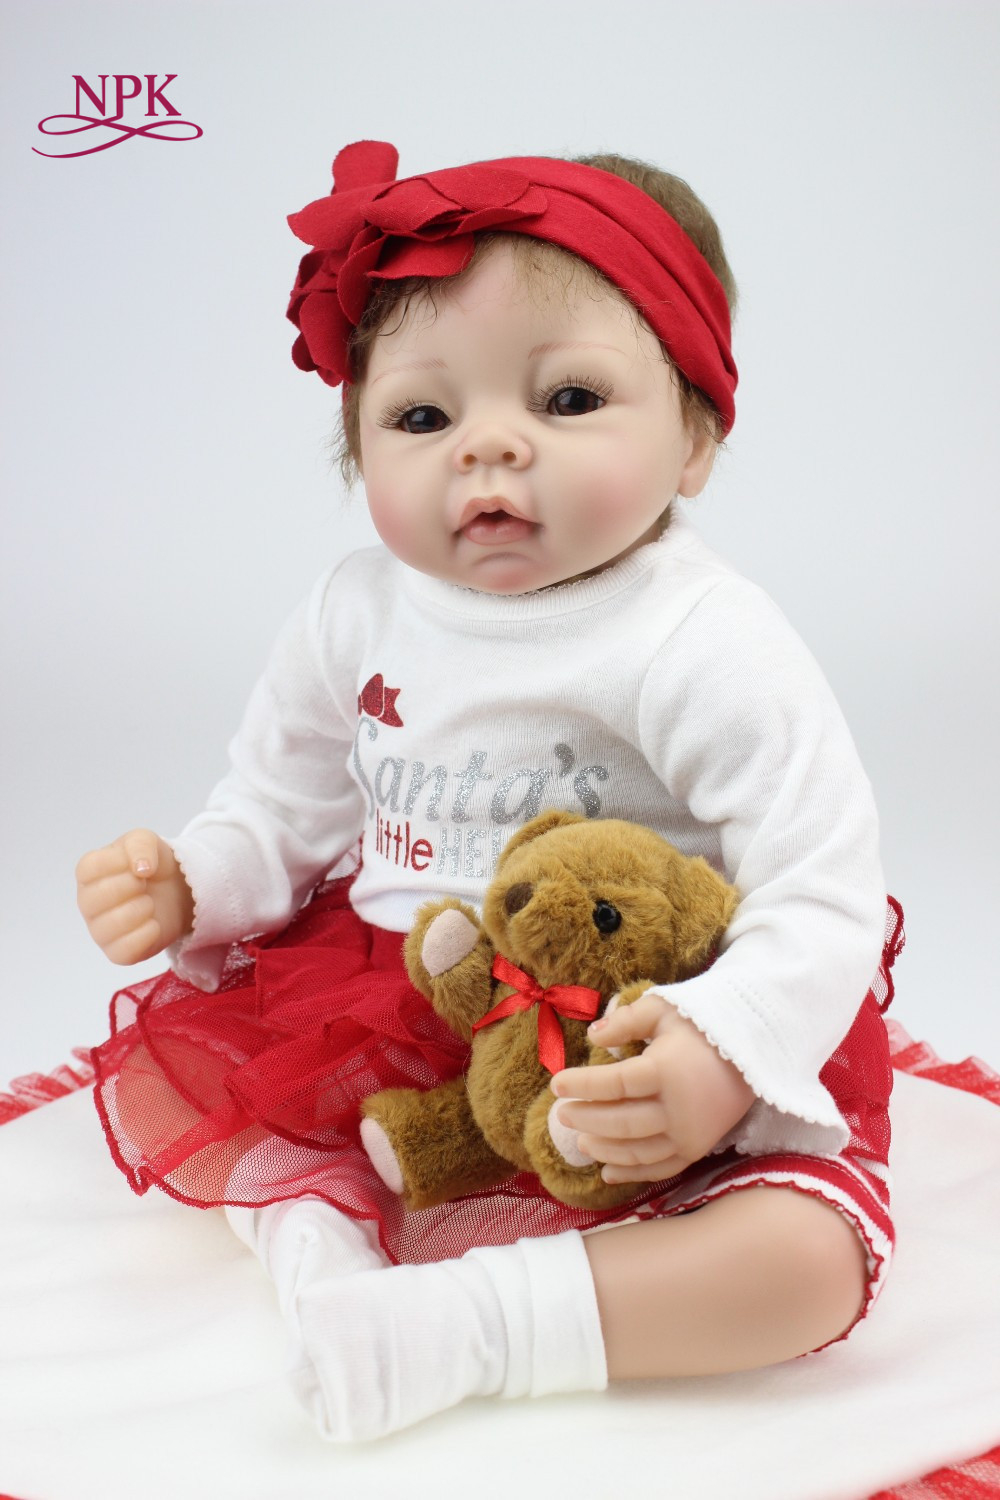 NPK reborn doll with softwholesale realistic simulation reborn baby doll soft silicone vinyl real gentle touch newborn doll alive reborn doll with soft real gentle touch wholesale realistic simulation reborn baby doll soft silicone vinyl